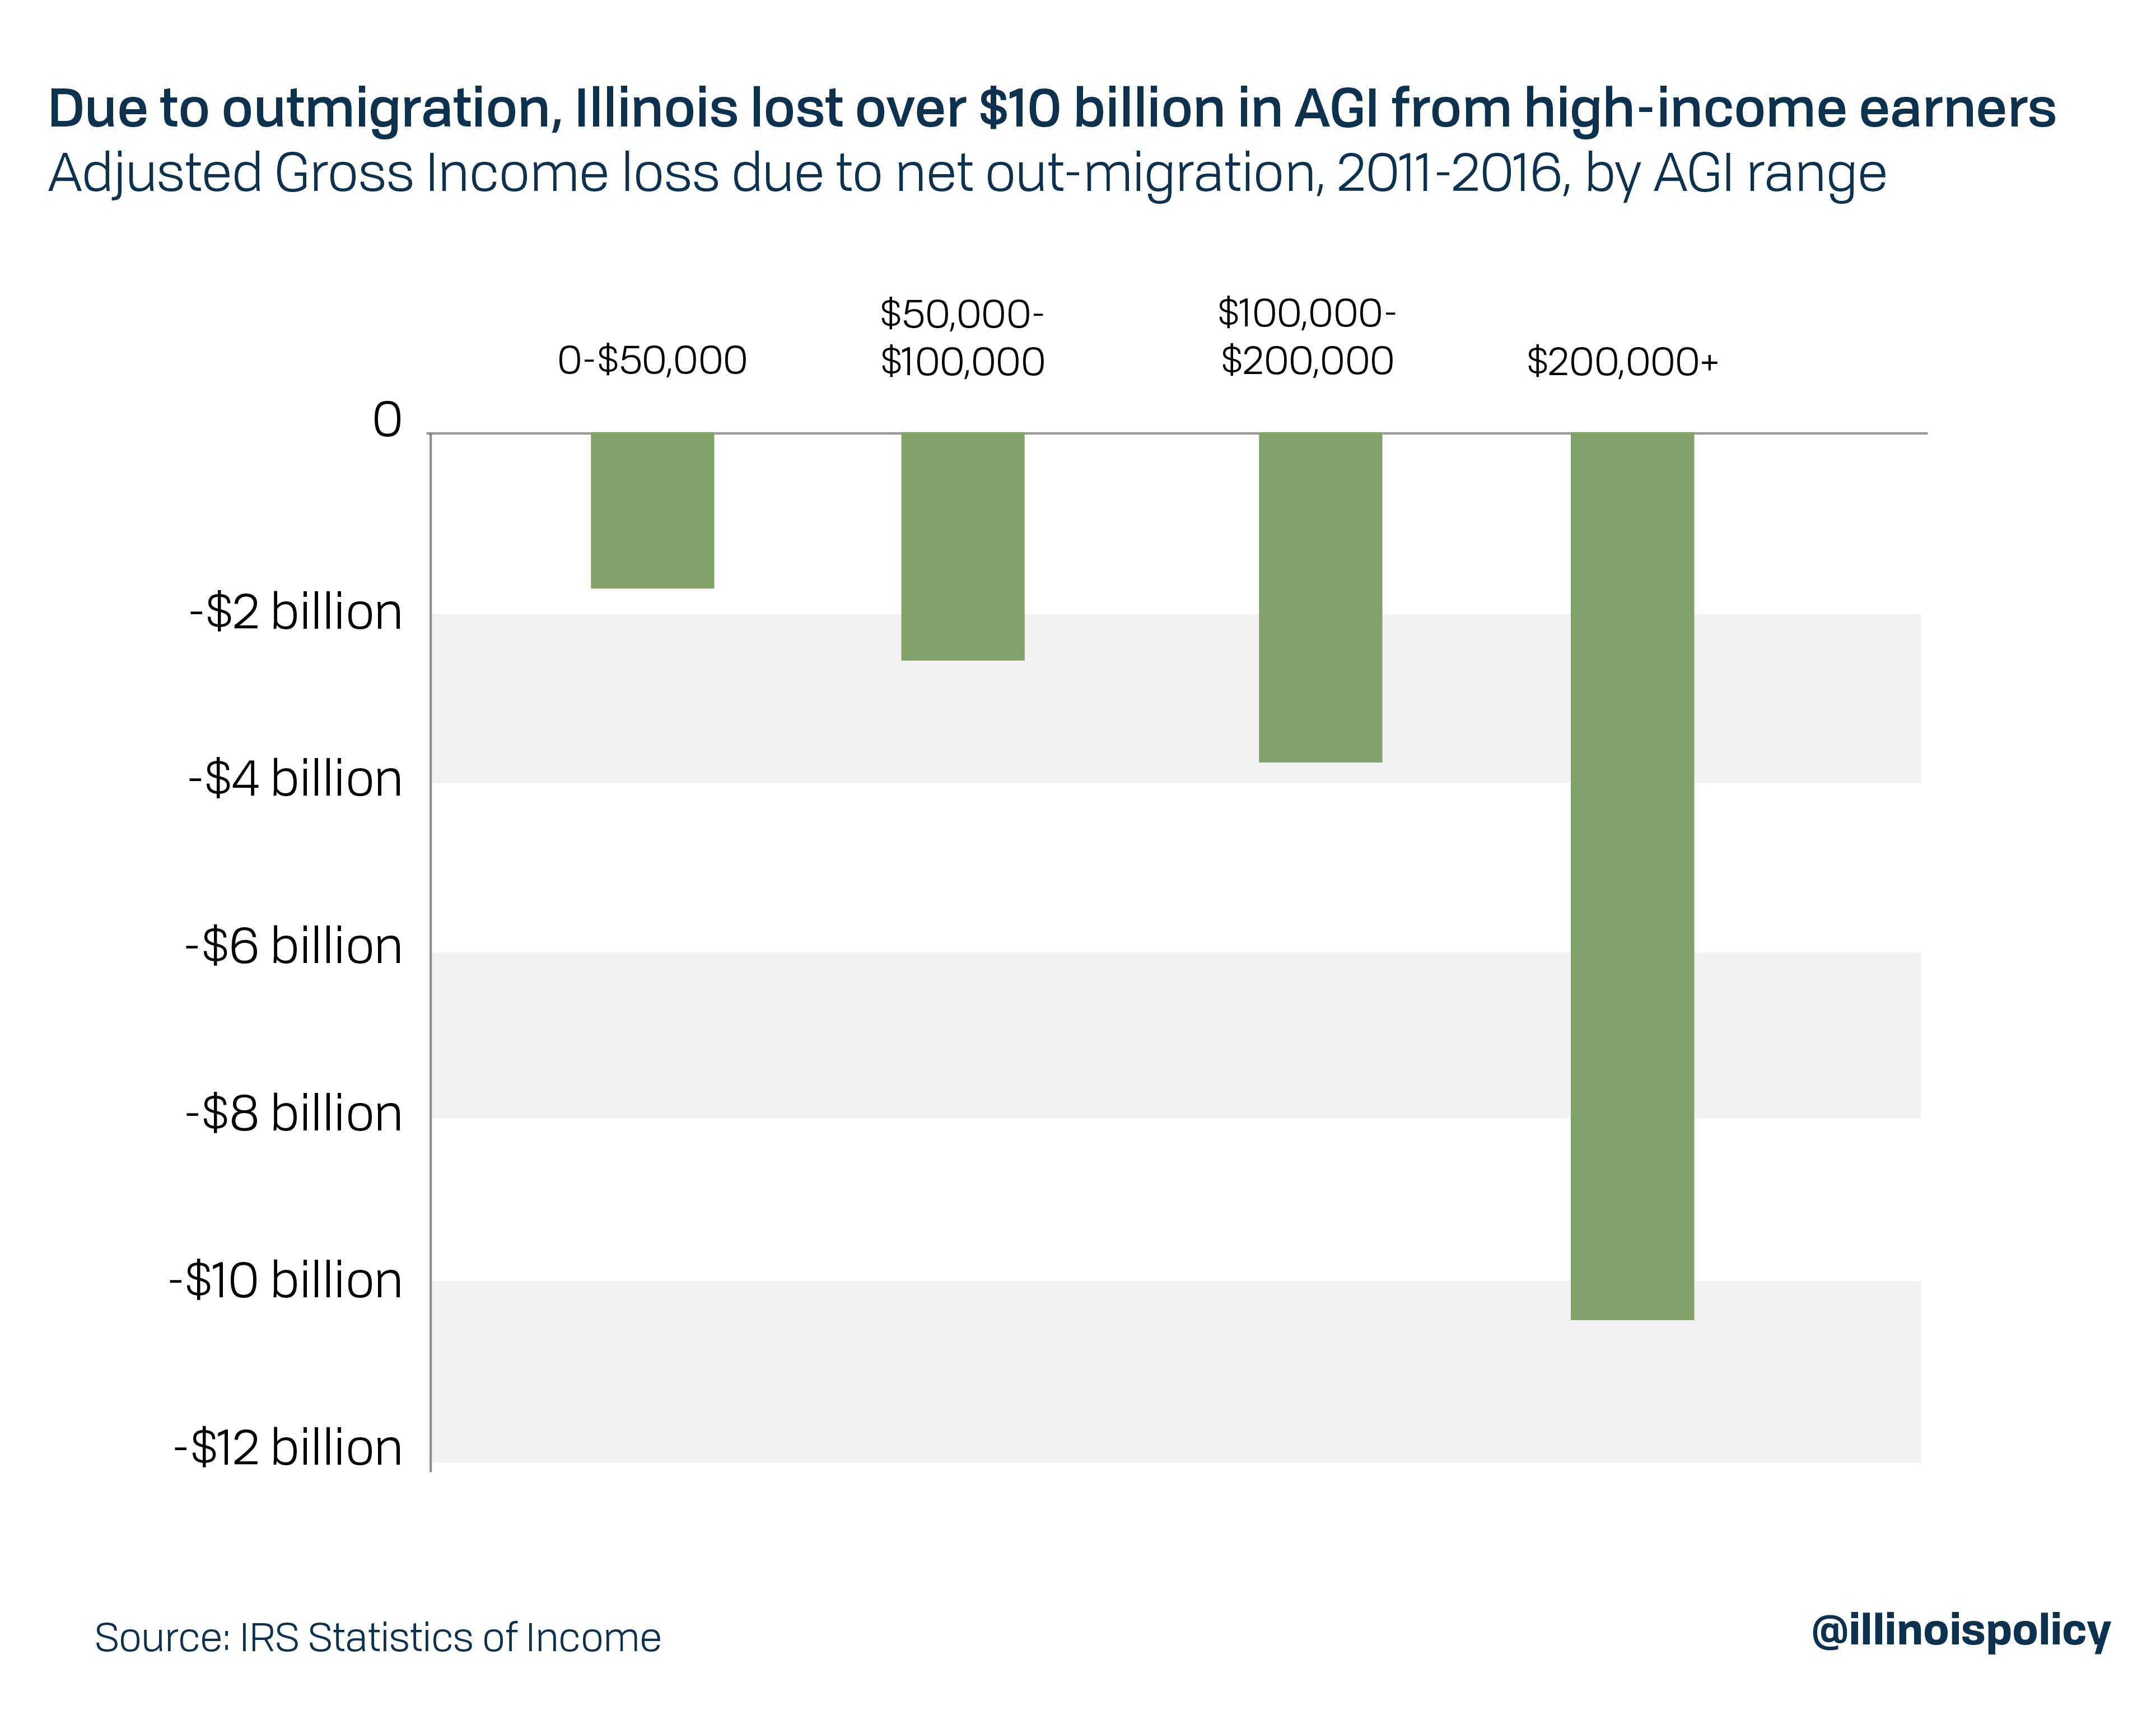 Due to outmigration, Illinois lost over $10 billion in AGI from high-income earners